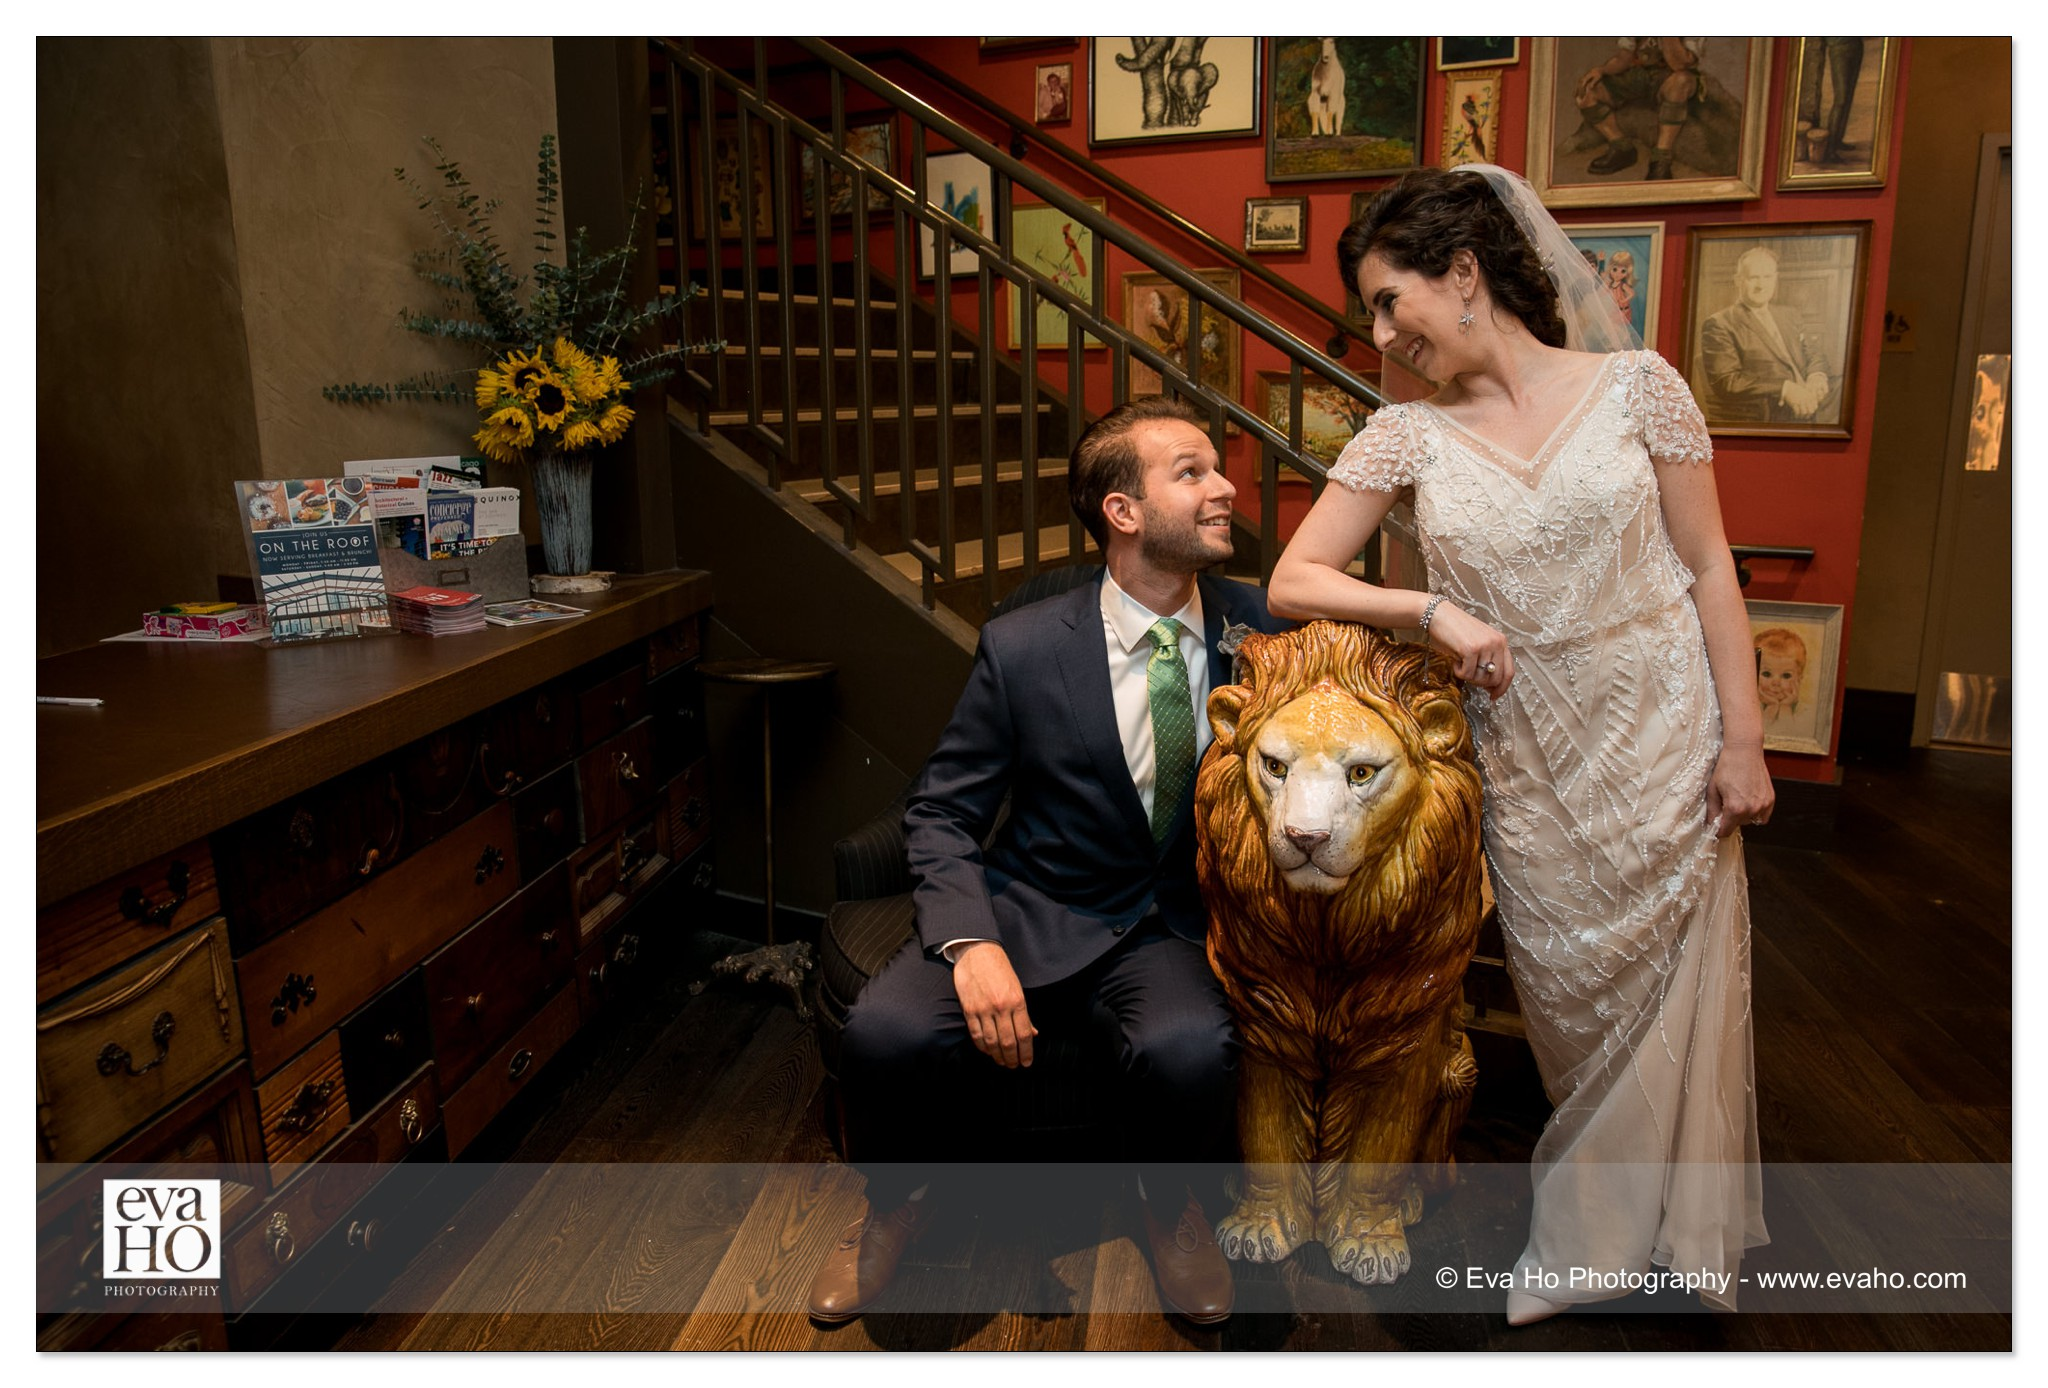 Bride and groom pose with a lion statue